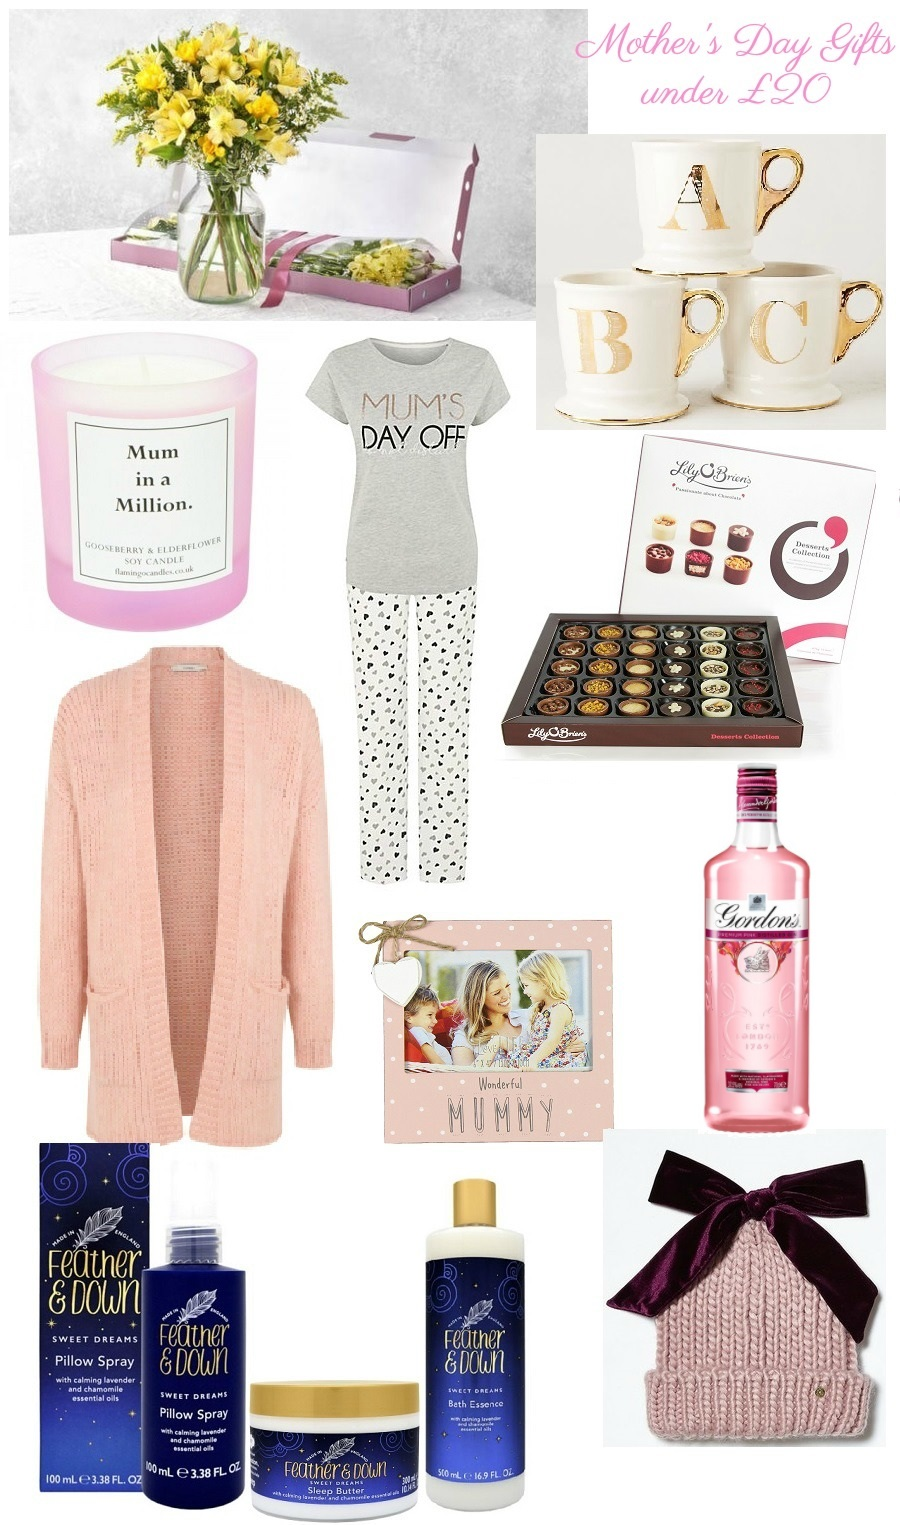 10 Mother's Day Gift Ideas Under £20, The Style Guide Blog, Mum gifts, gifts for her